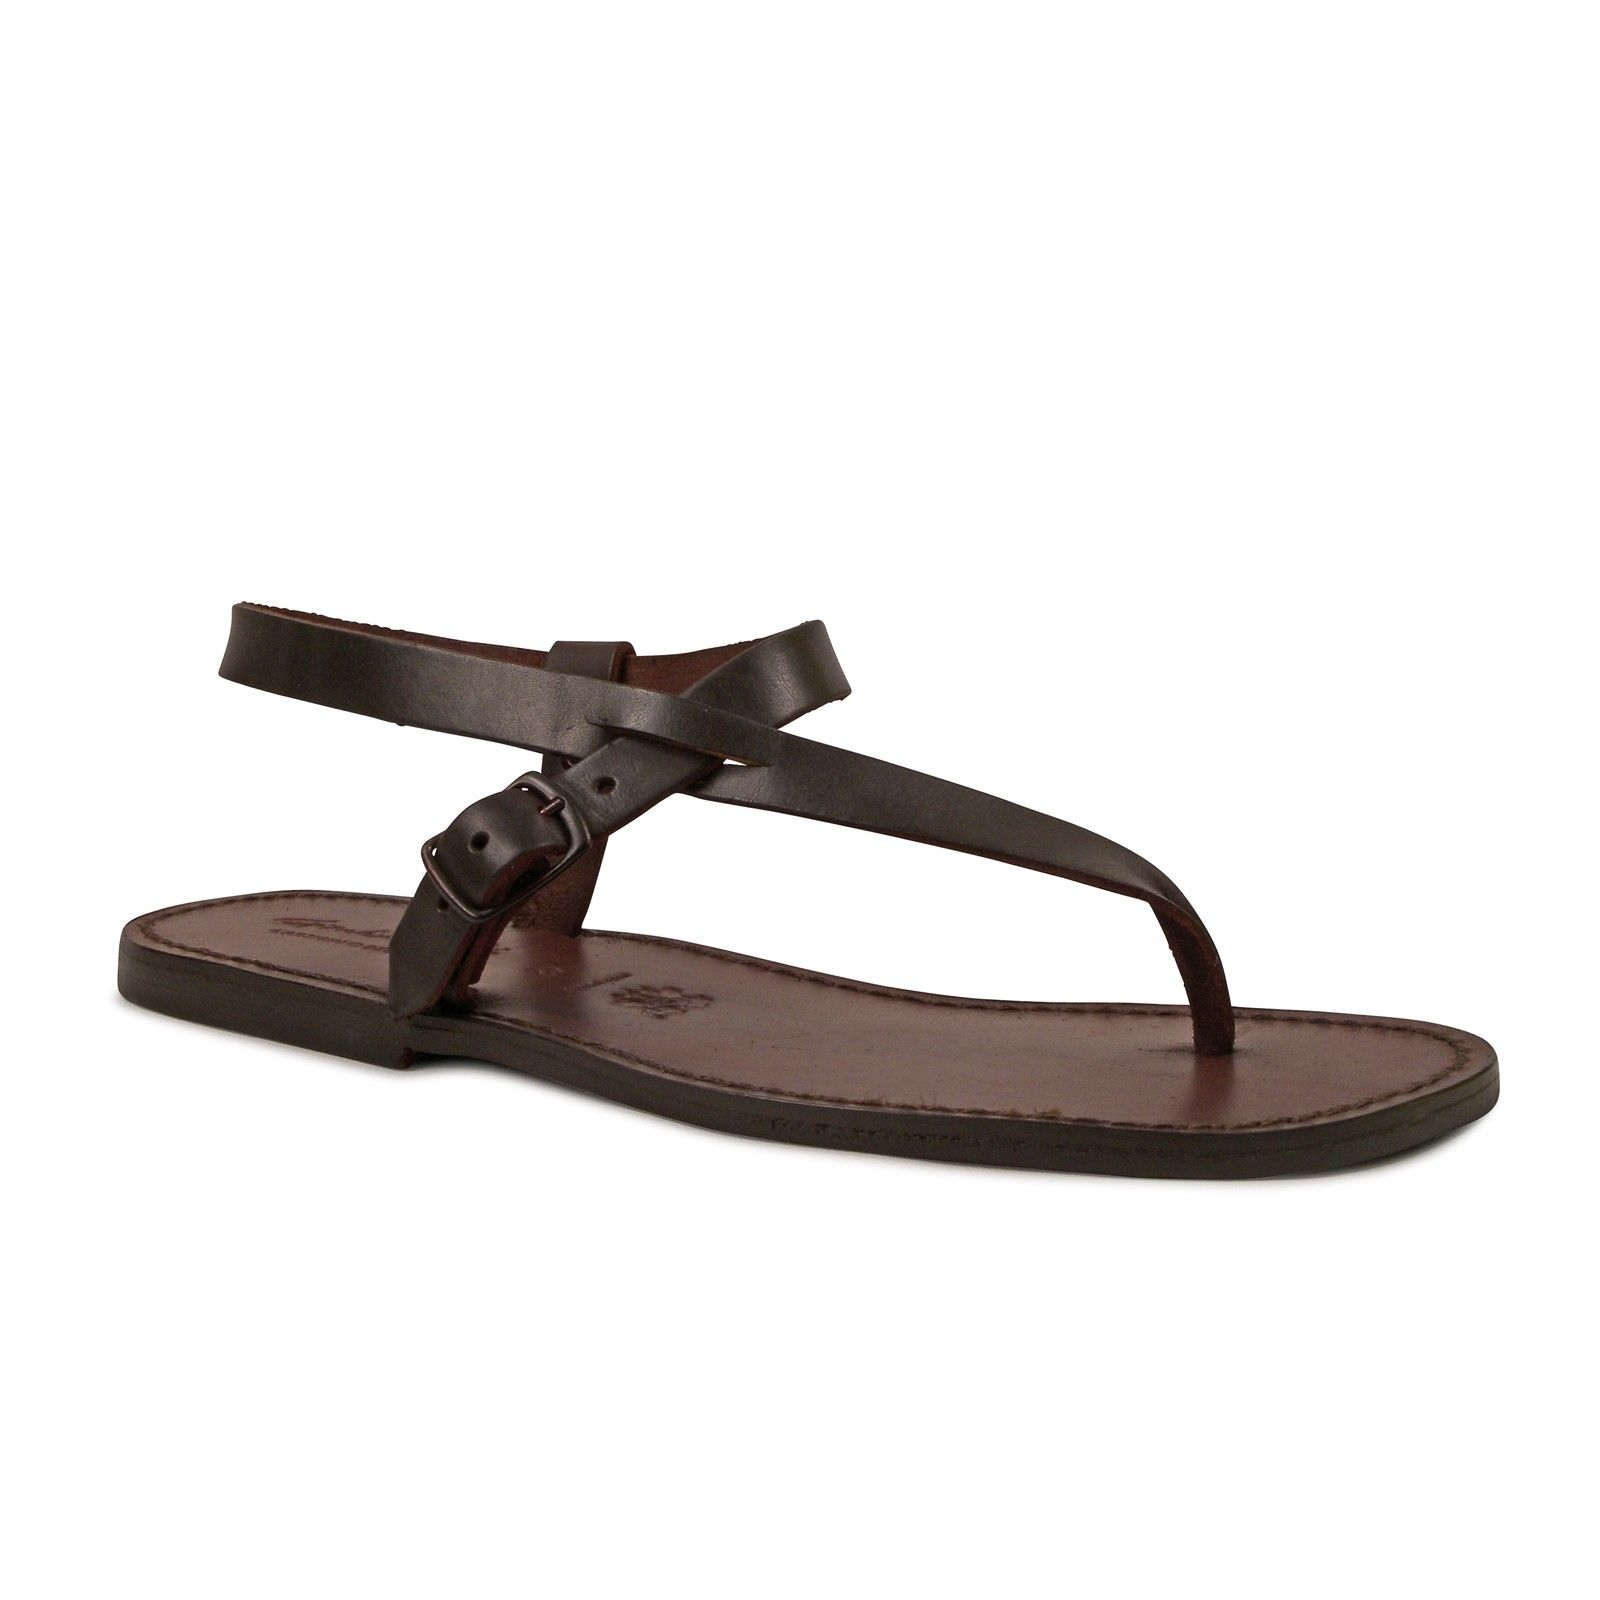 1789390843fc Handmade brown leather thong sandals for men